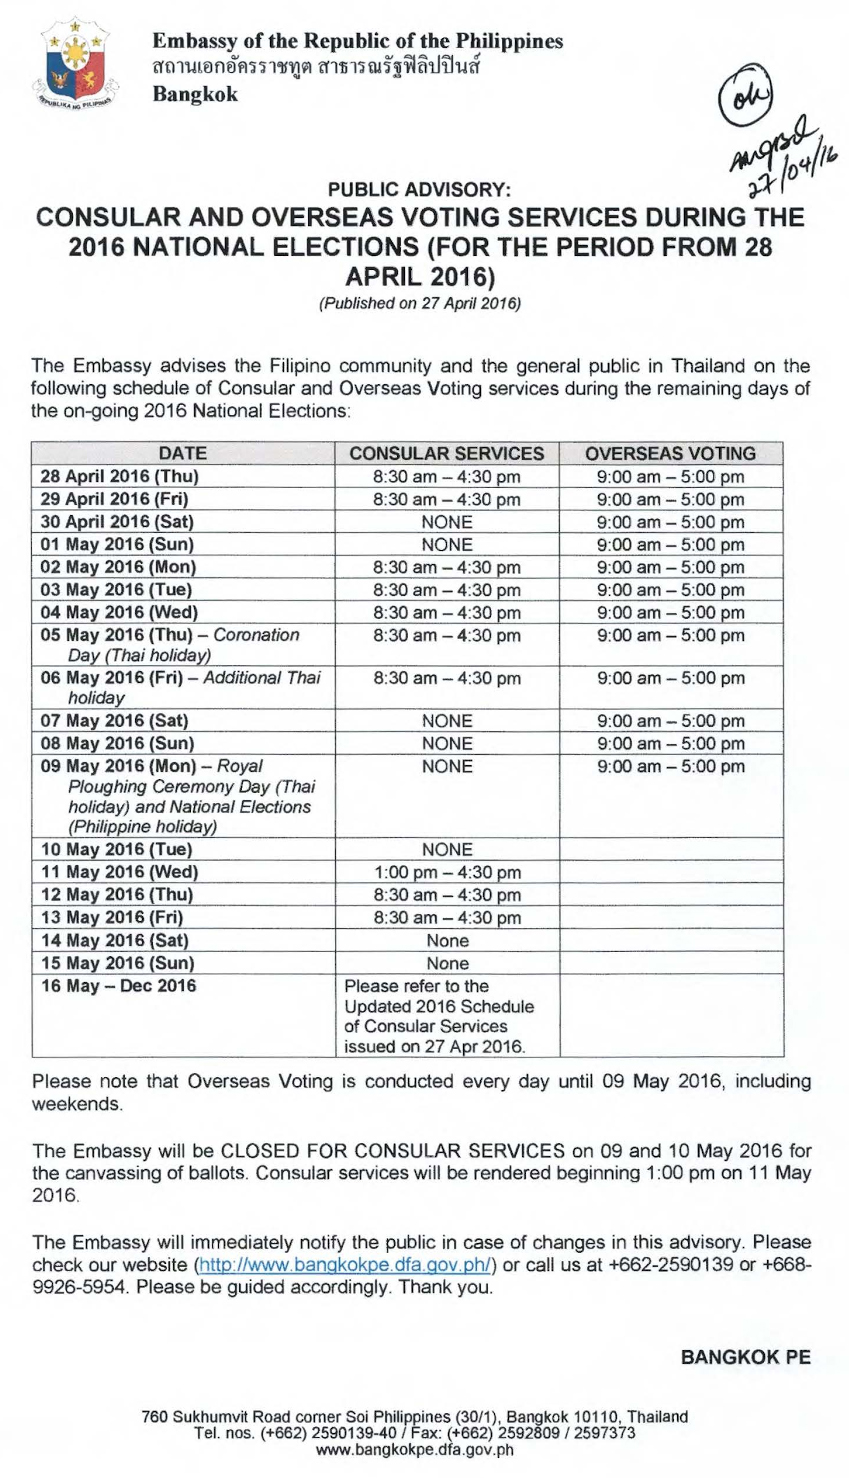 PHL Embassy May 2016 schedule